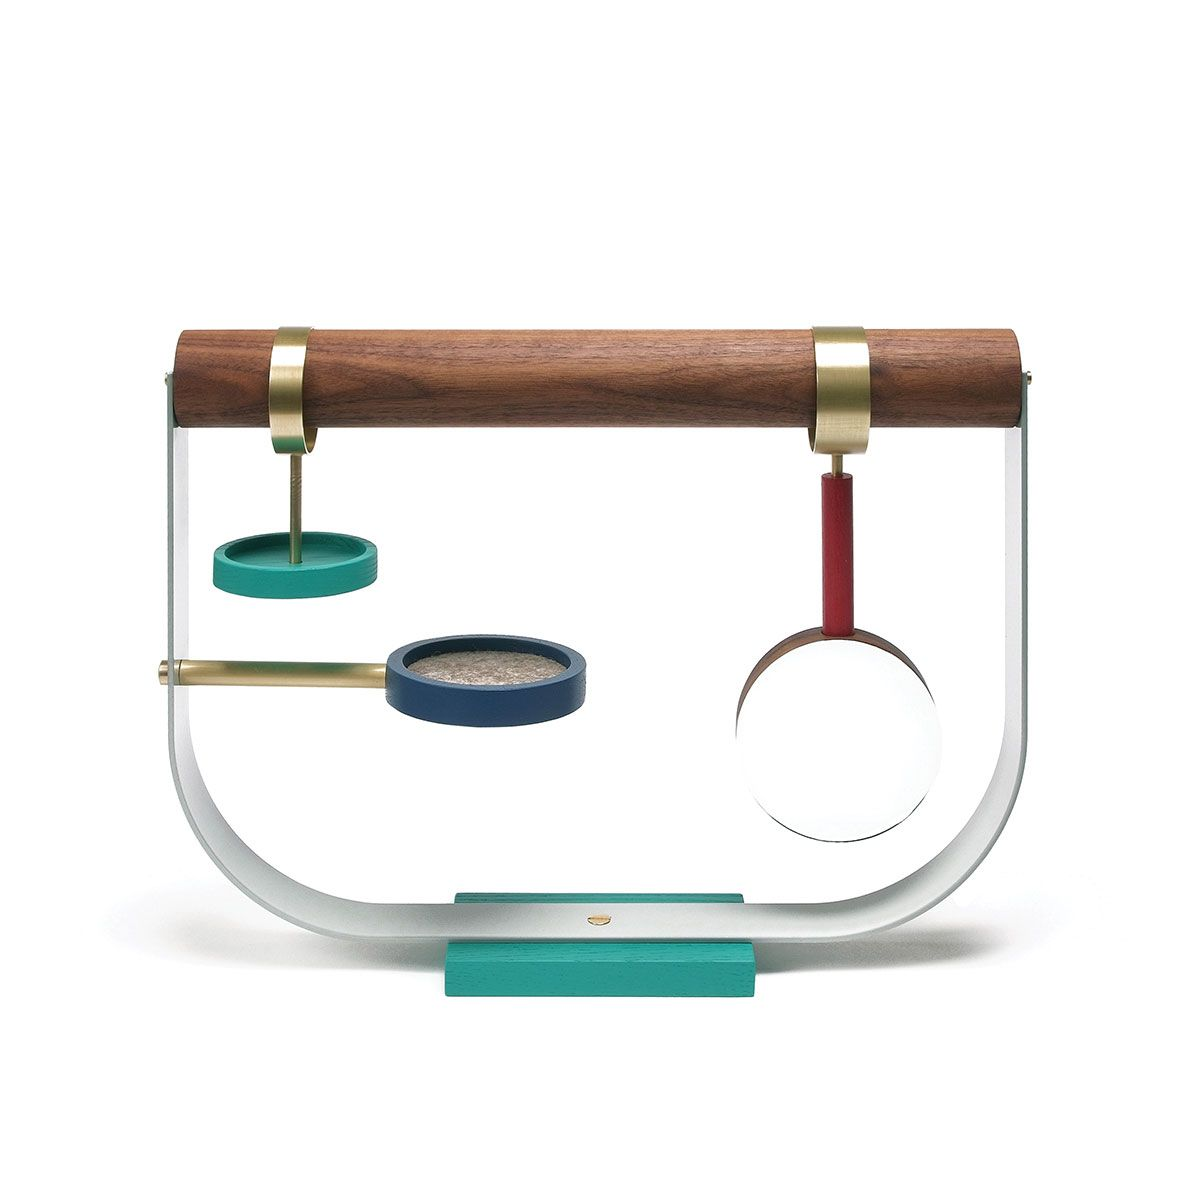 Arbor jewelry stand via Goodmoods